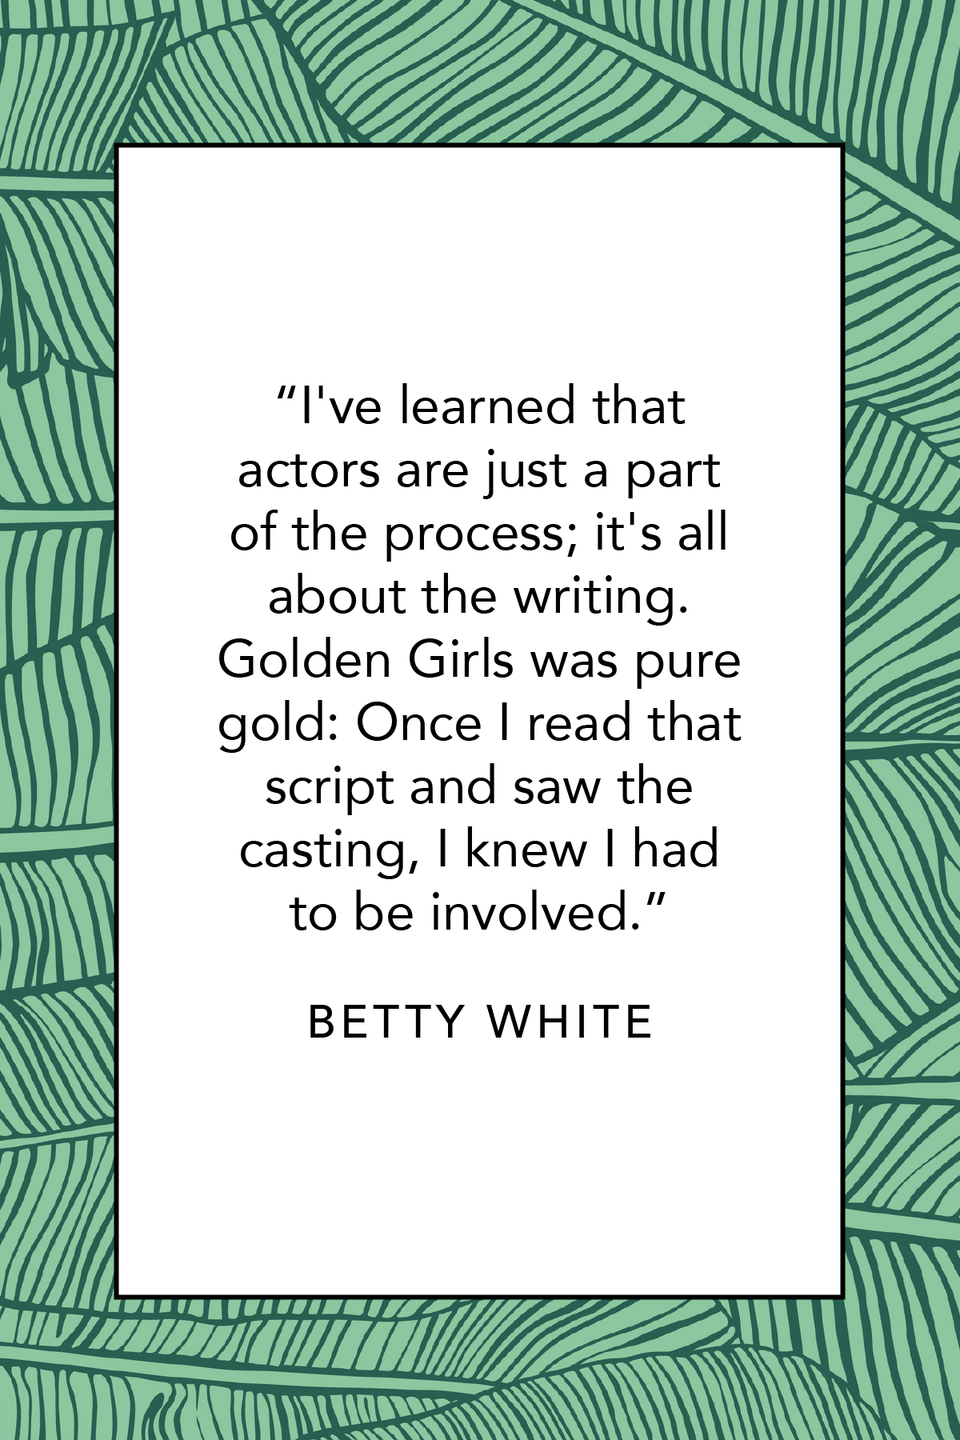 """<p>Betty White loves <em>Golden Girls</em> as much as we do. She discussed the show in a <a href=""""https://www.hollywoodreporter.com/news/qampa-betty-white-19815"""" rel=""""nofollow noopener"""" target=""""_blank"""" data-ylk=""""slk:Hollywood Reporter"""" class=""""link rapid-noclick-resp""""><em>Hollywood Reporter</em> </a>interview: """"I've learned that actors are just a part of the process; it's all about the writing. <em>Golden Girls</em> was pure gold: Once I read that script and saw the casting, I knew I had to be involved.""""</p>"""